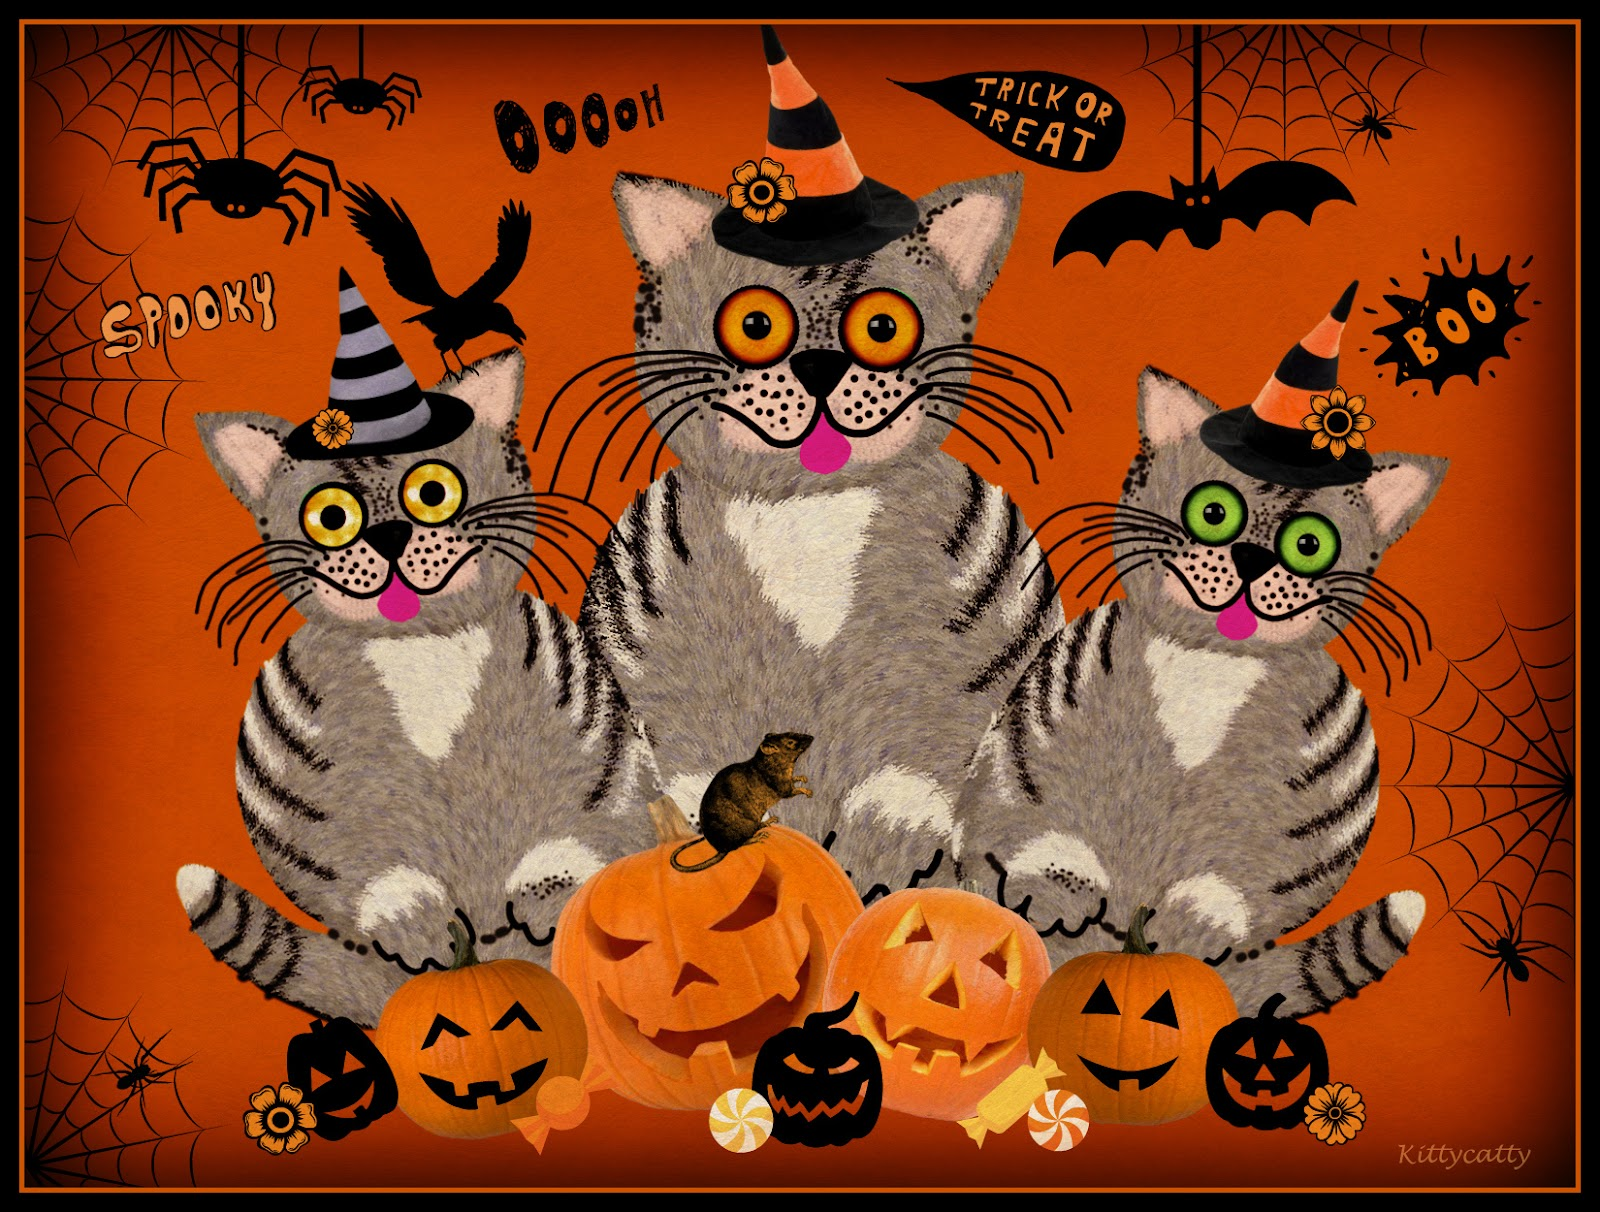 http://2.bp.blogspot.com/-J5CpMyparkI/UHbrTOumgrI/AAAAAAAAHTY/v5U6Pi9-ma8/s1600/Halloween+Wallpaper+Backgrounds+001.jpg